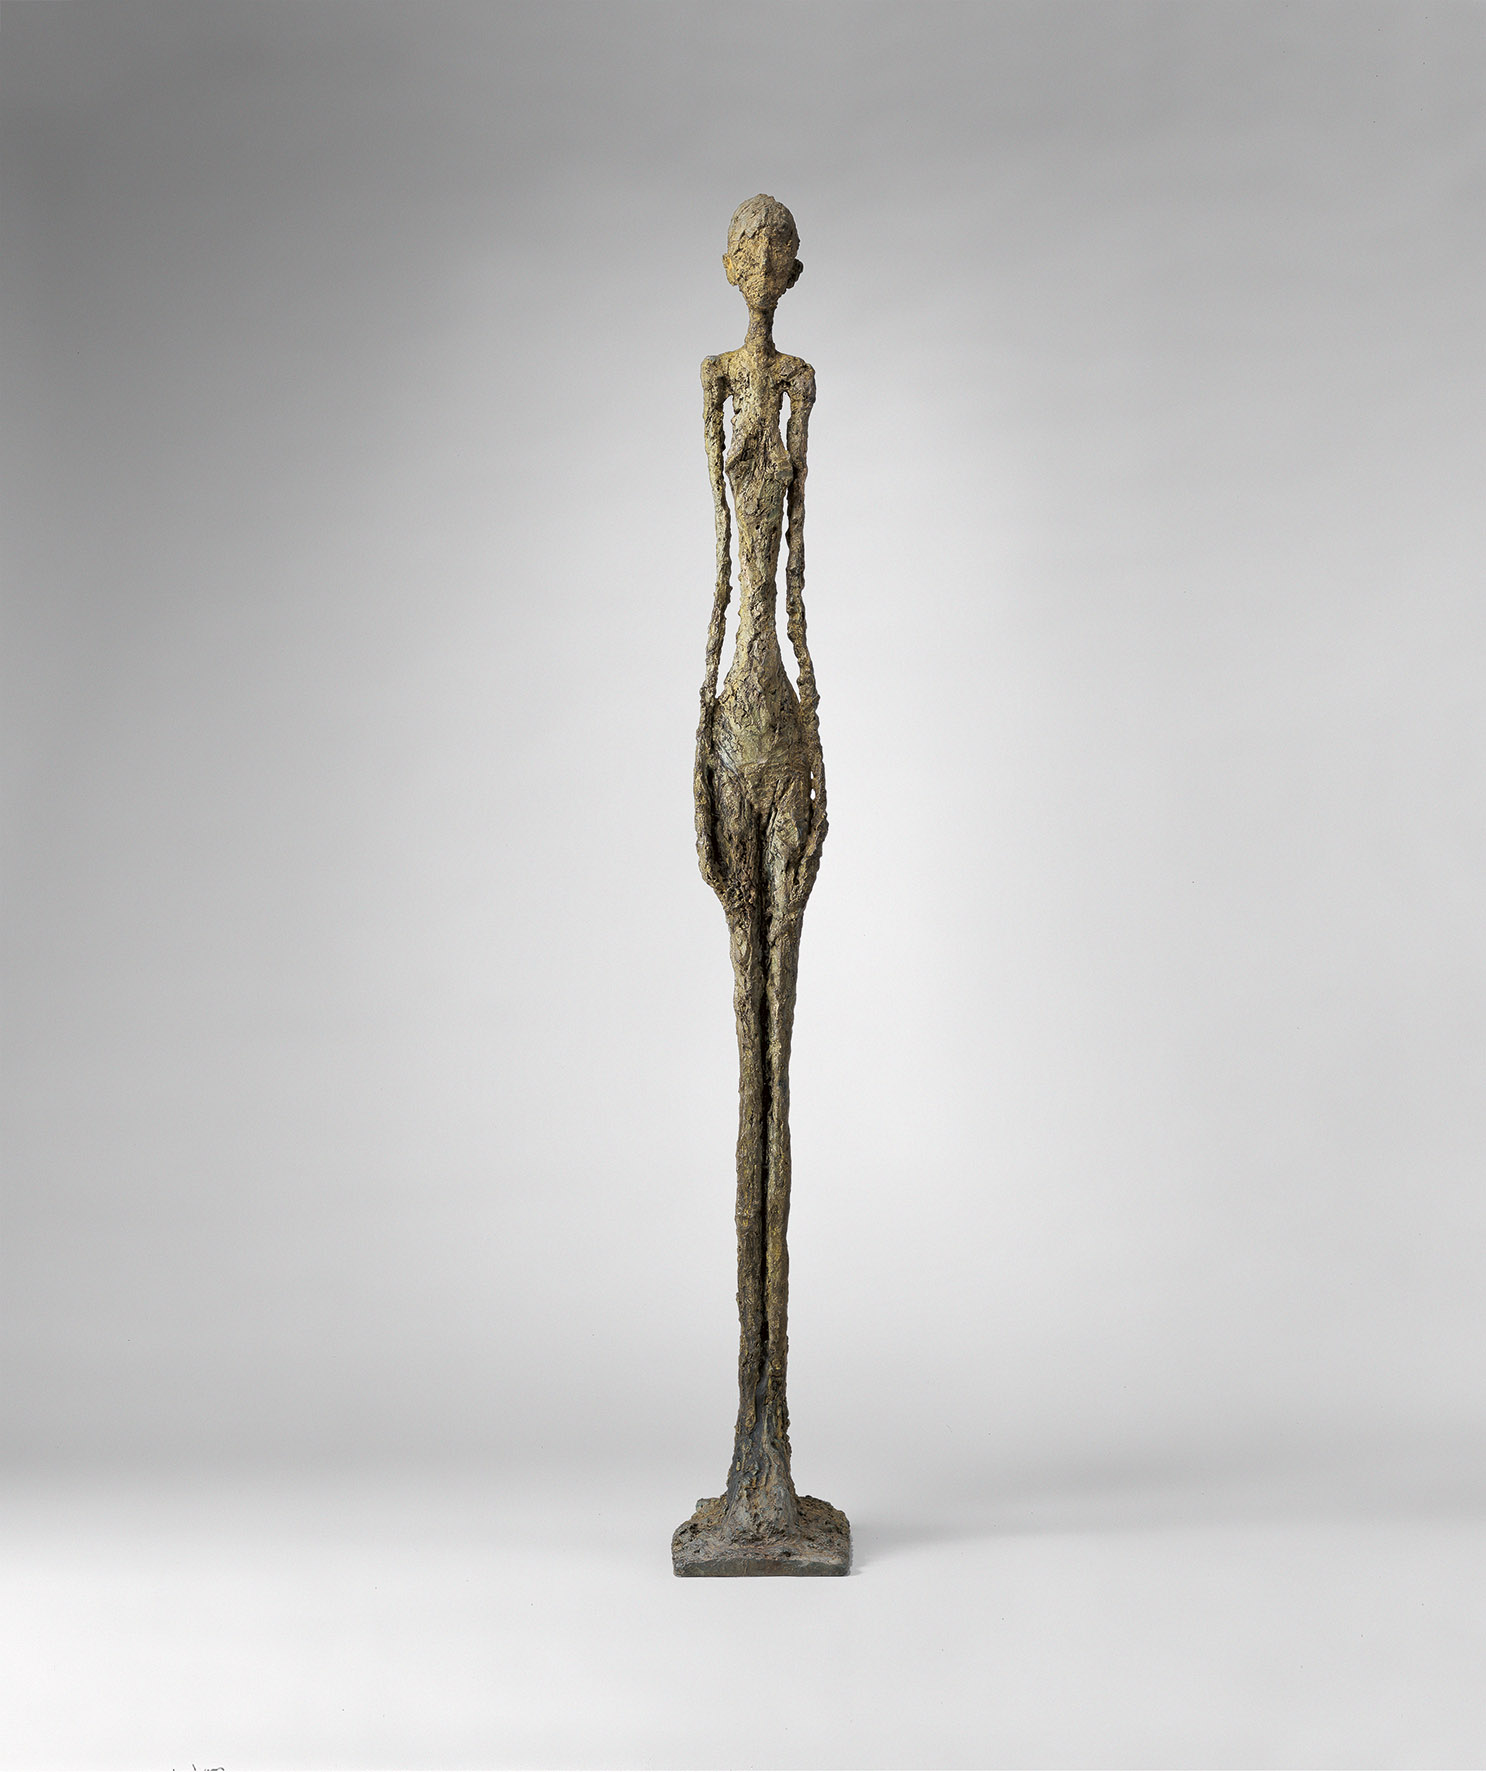 Alberto Giacometti, Femme debout, 1960, bronzo, cm 270 x 35 x 53. Saint-Paul-de-Vence, Fondation Marguerite et Aimé Maeght © Claude Germain - Archives Fondation Maeght (France) © Alberto Giacometti Estate / by SIAE in Italy 2019